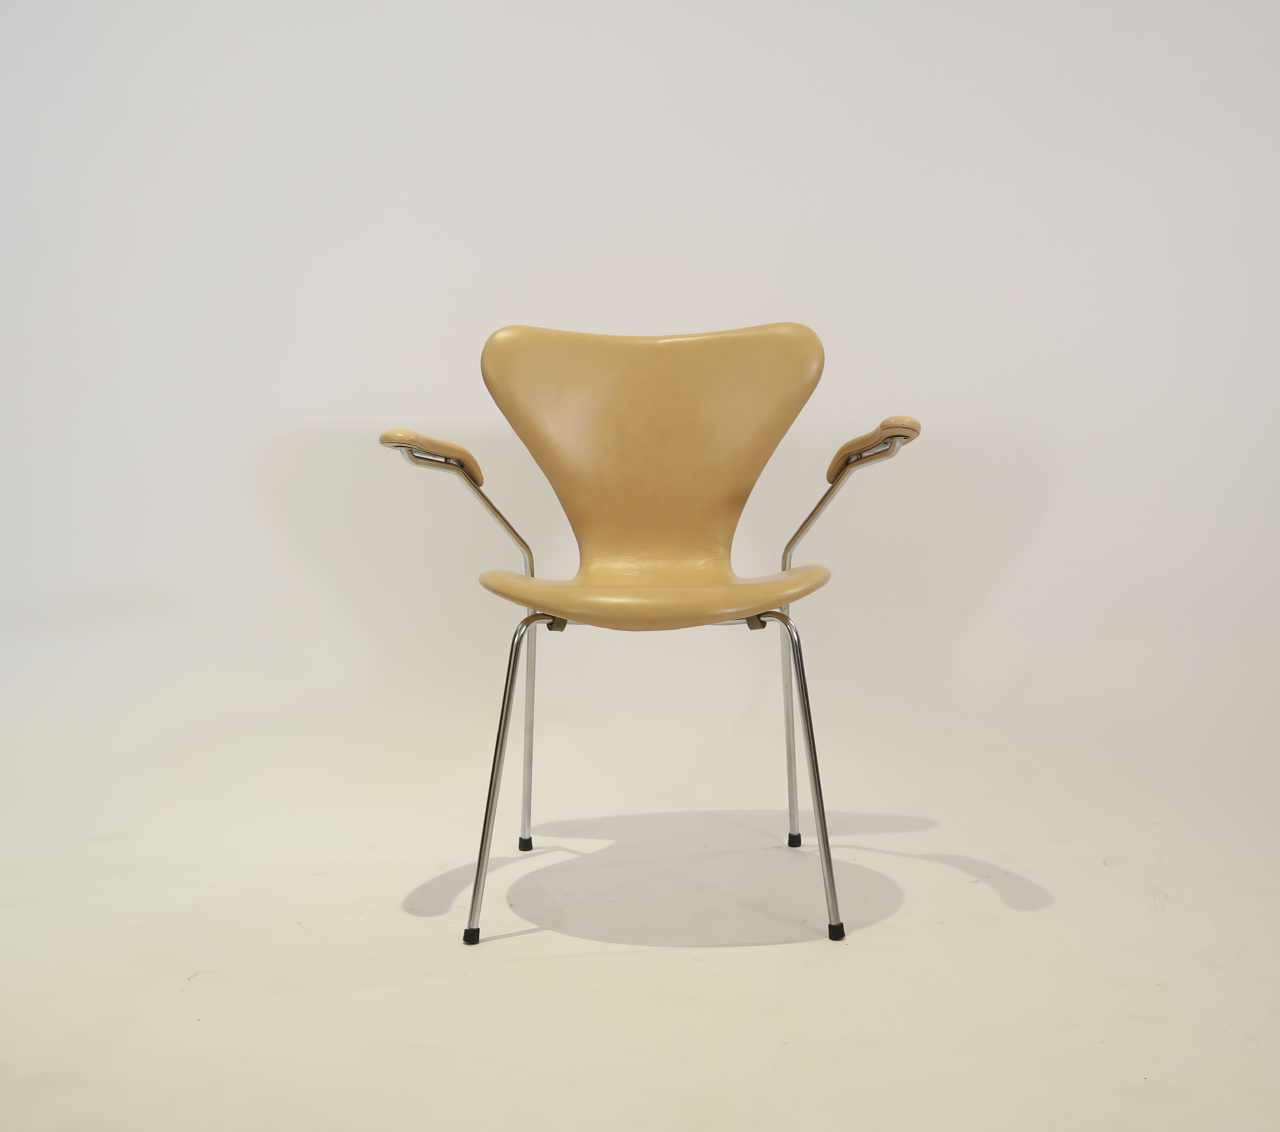 Awe Inspiring 3207 Leather Armchair By Arne Jacobsen For Fritz Hansen Pabps2019 Chair Design Images Pabps2019Com